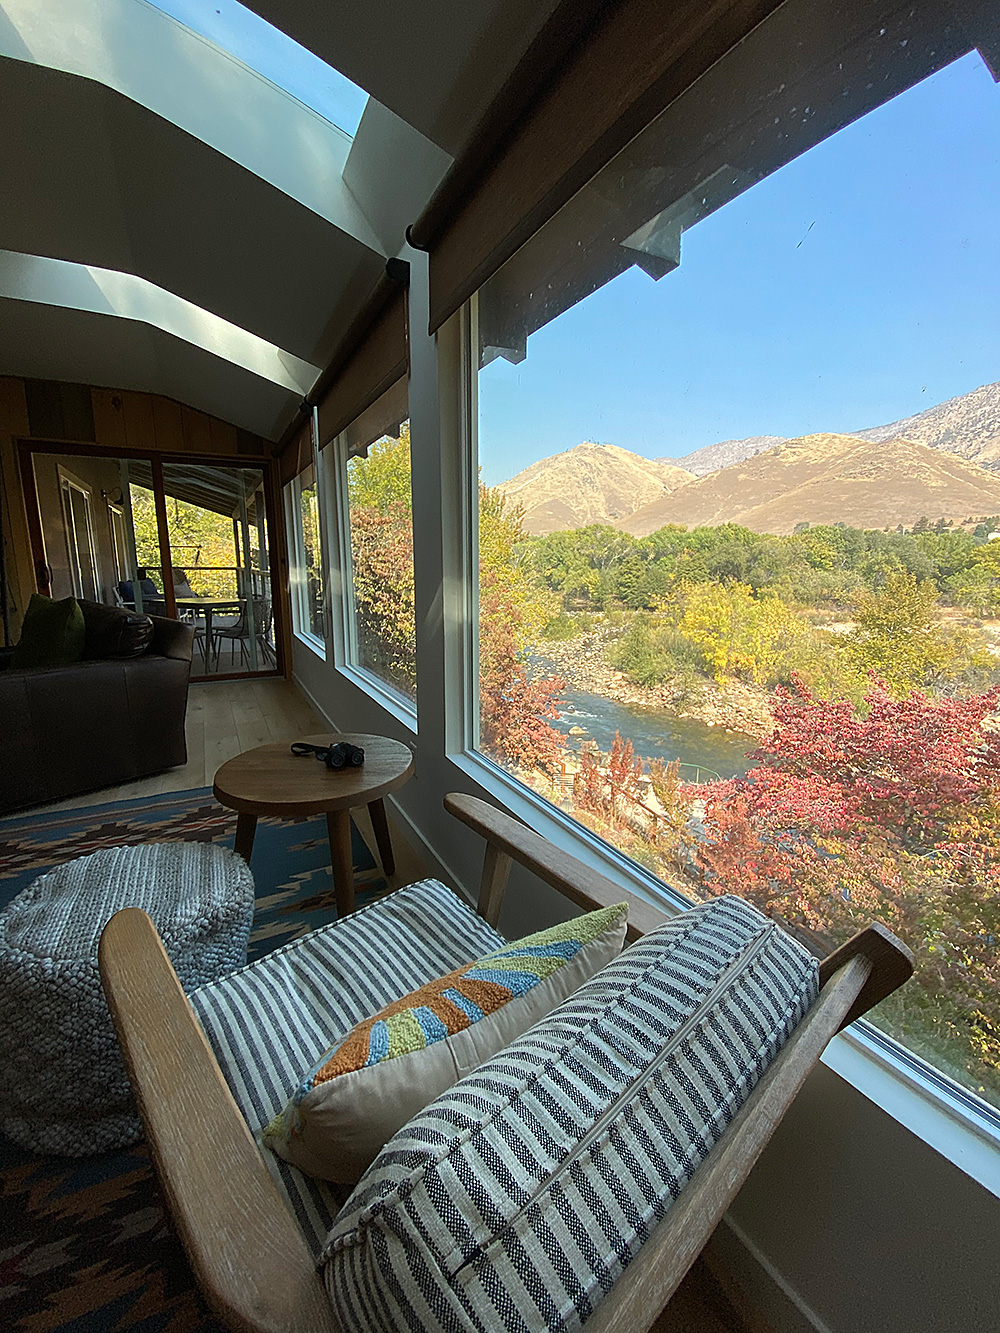 The best Kern River views while sitting in modern lodge cabin style from your vacation home rental the Big View House.